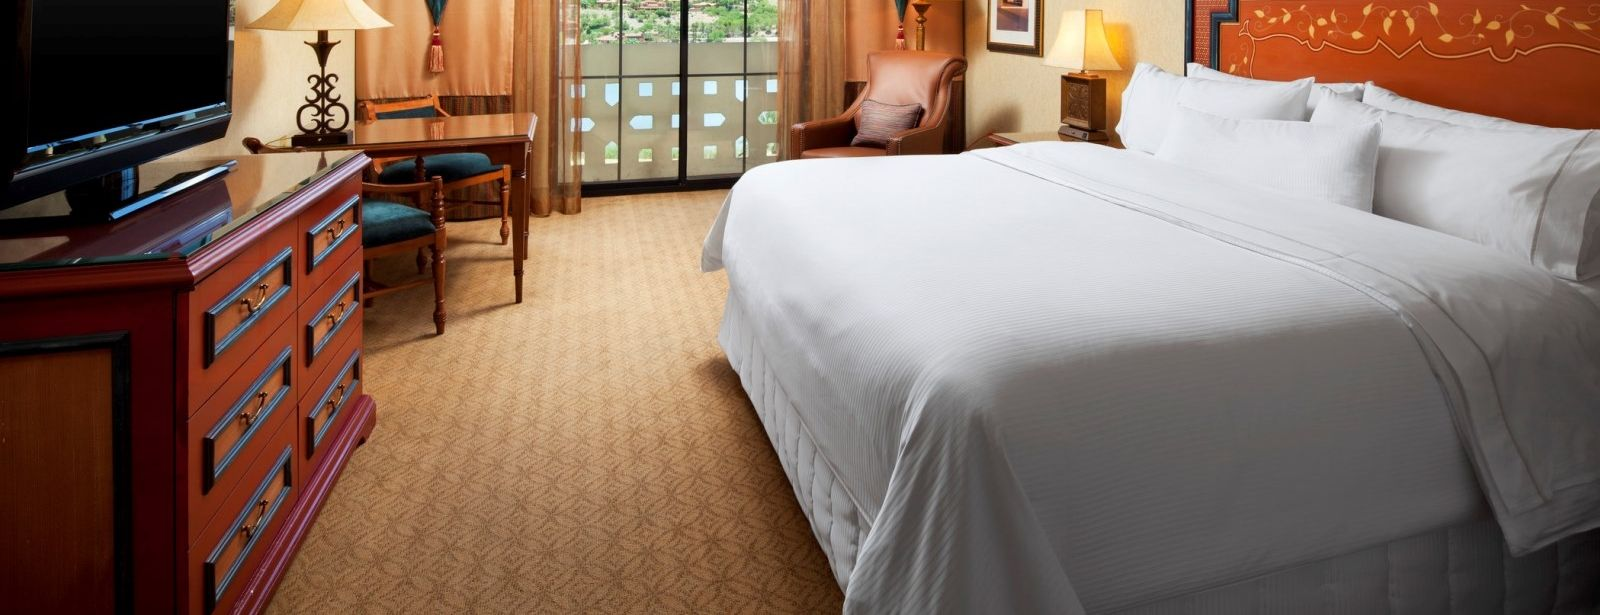 lake las vegas hotels - traditional room